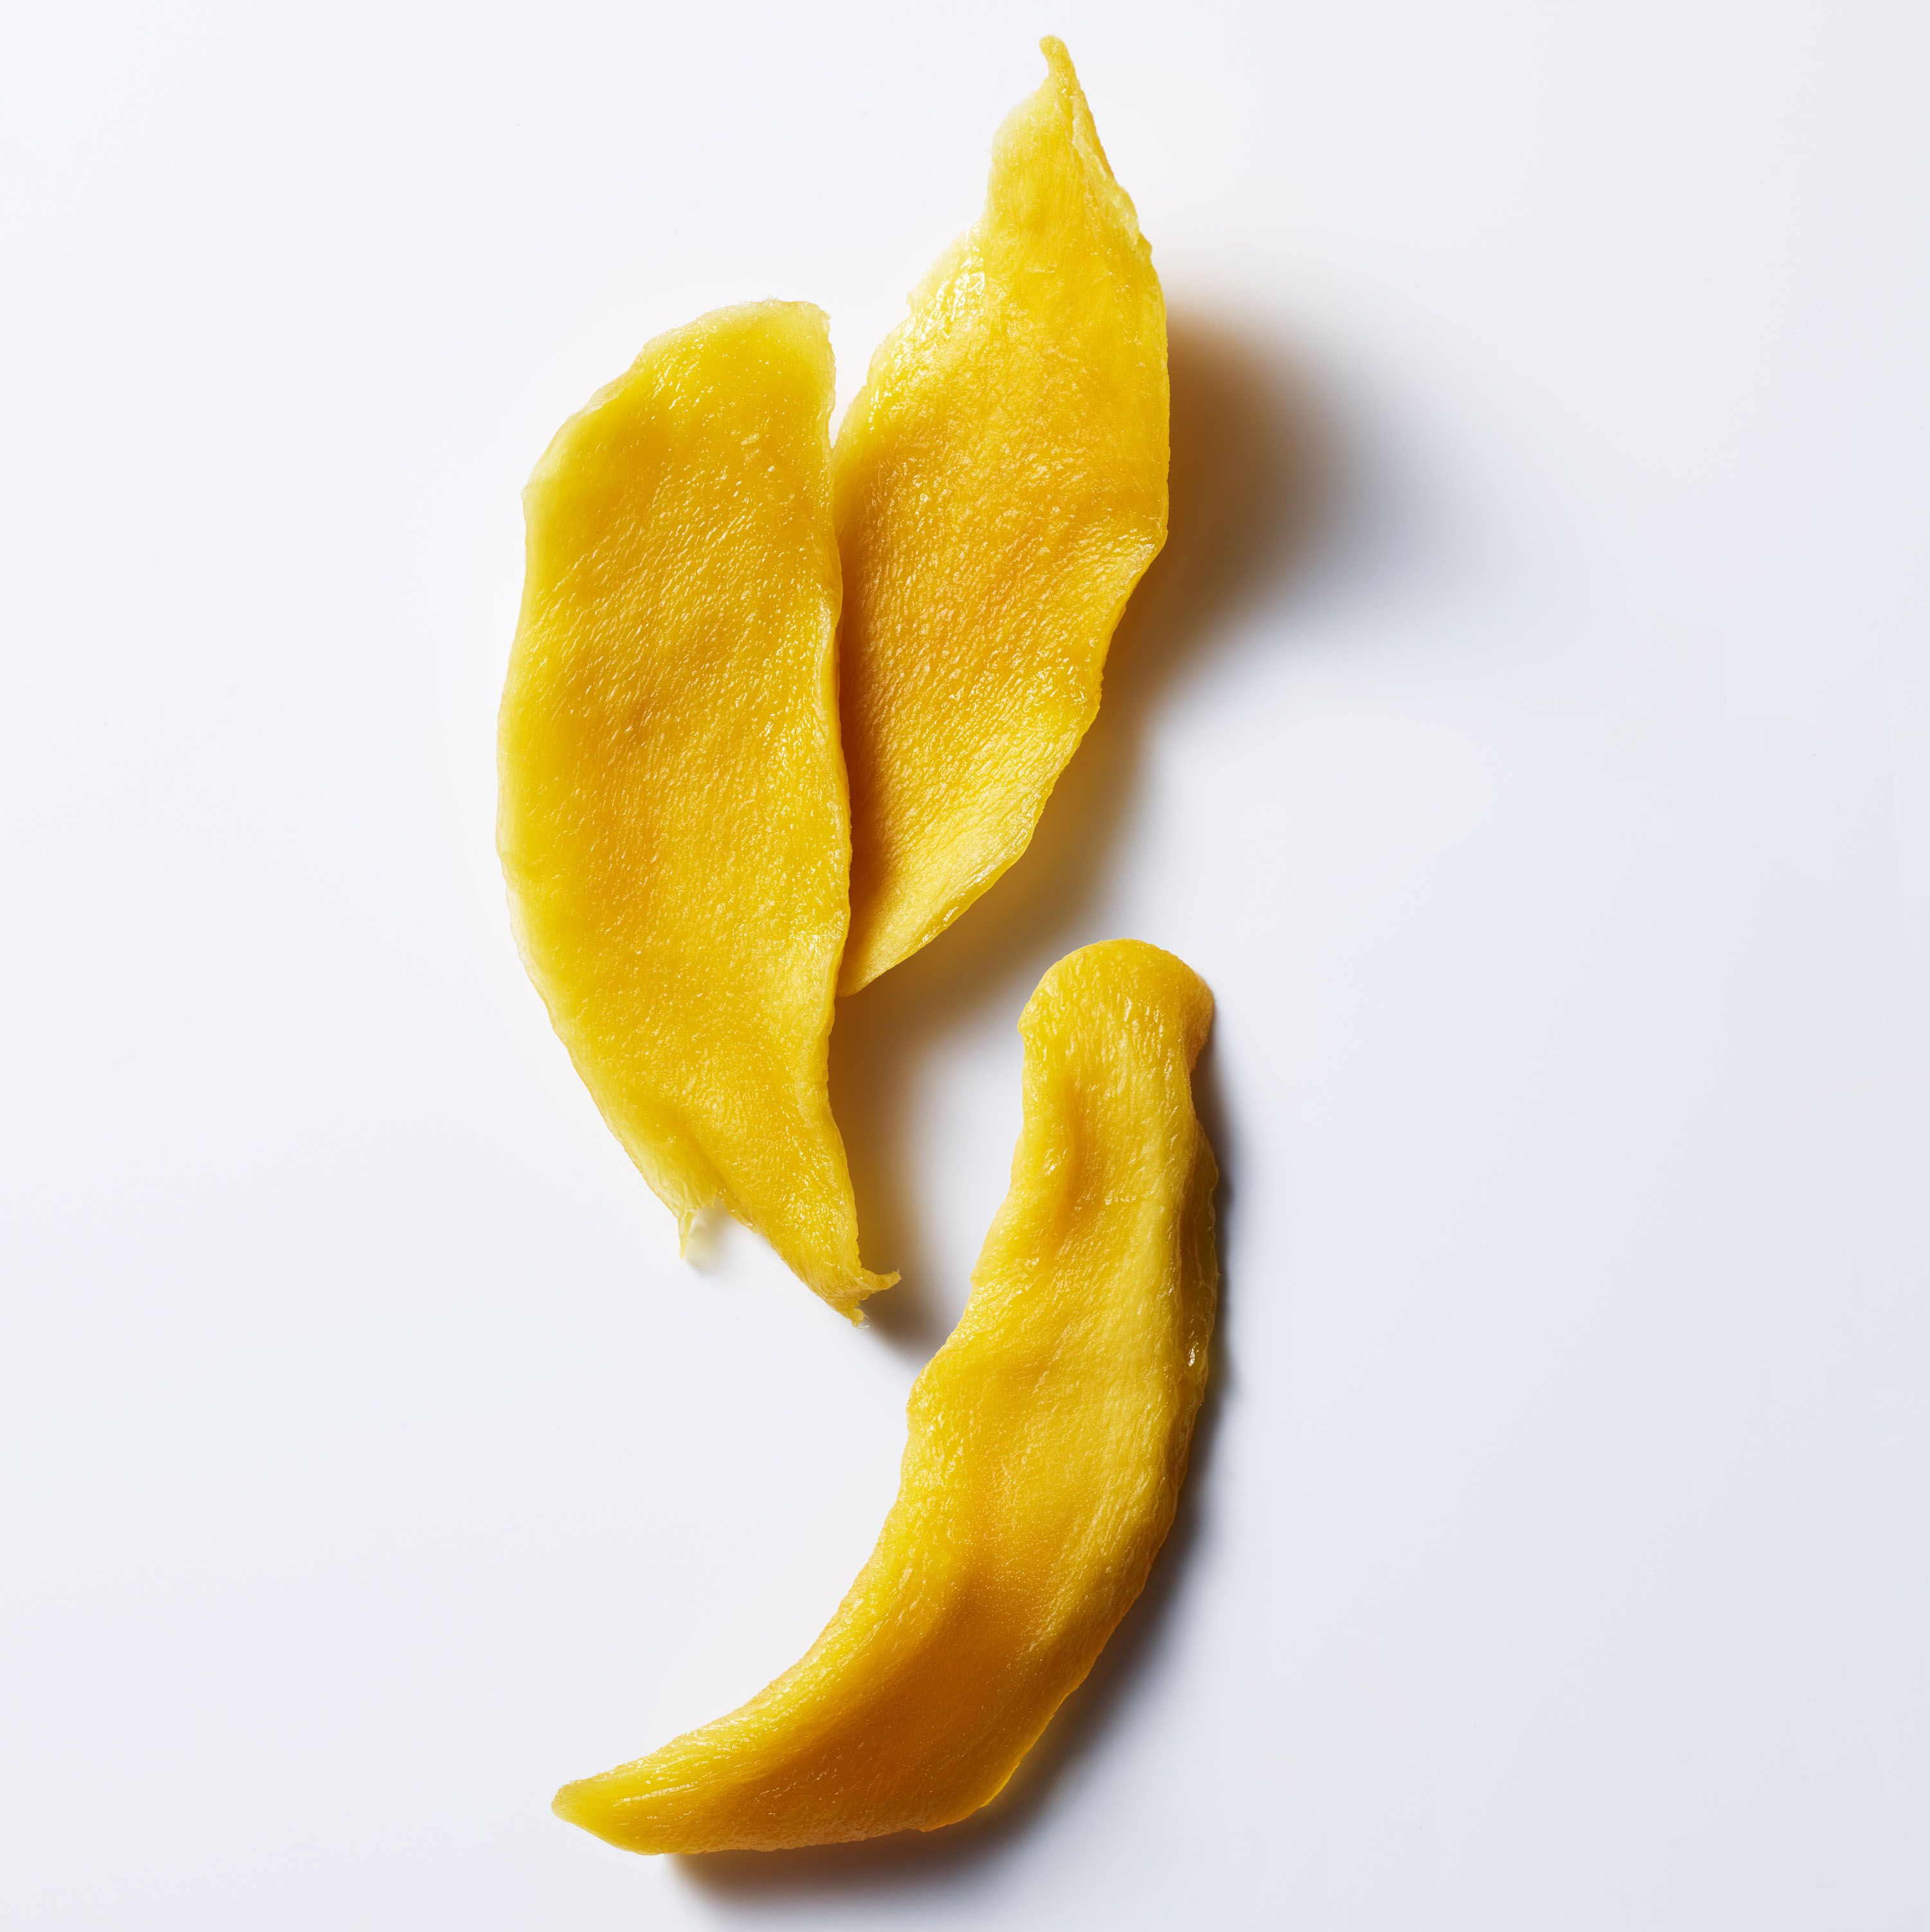 dried mango serving size